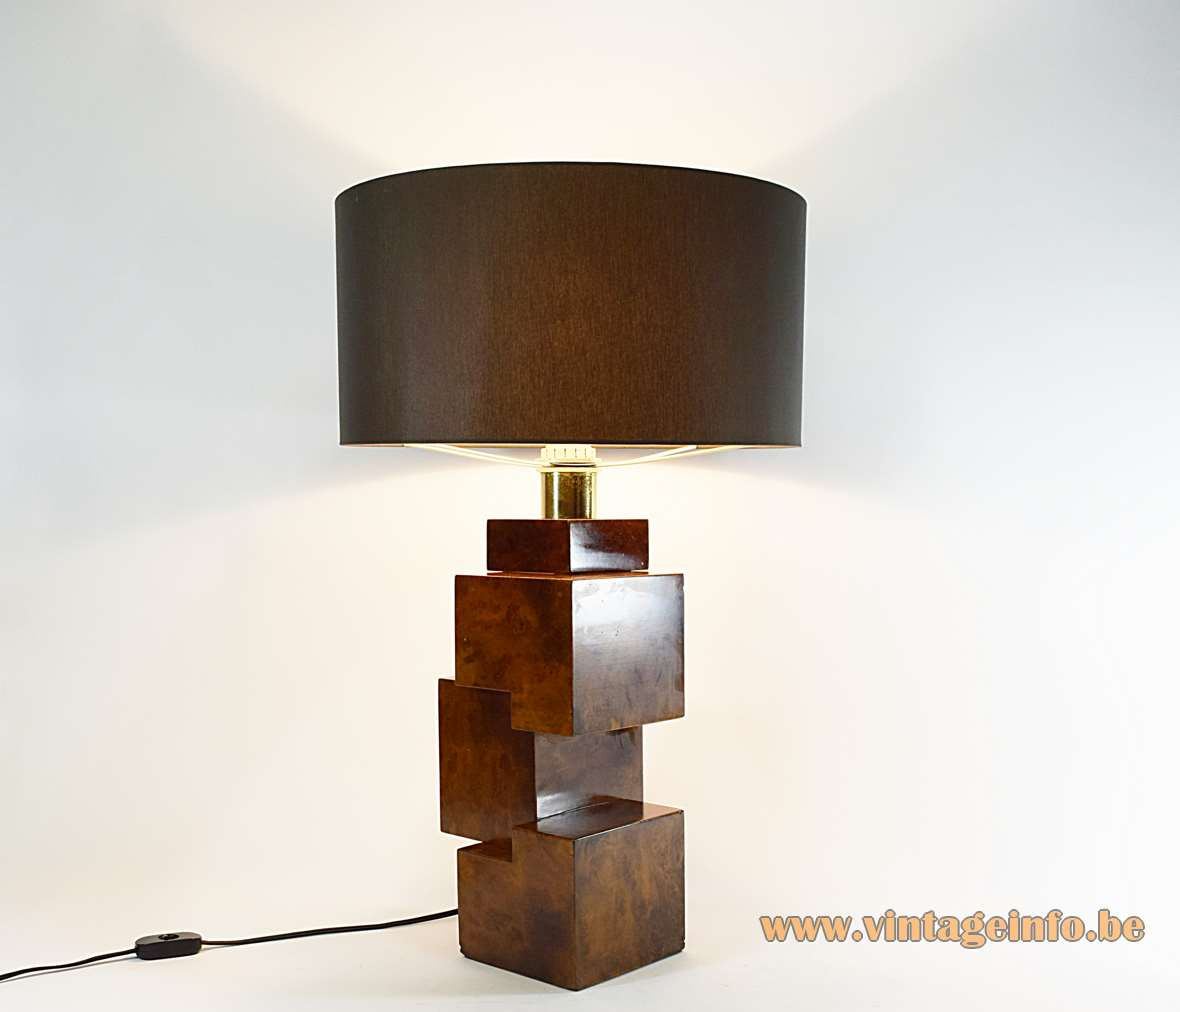 Burr Walnut Cityscape table lamp burl wood cubes geometric square lampshade 1960s 1970s MCM Italy